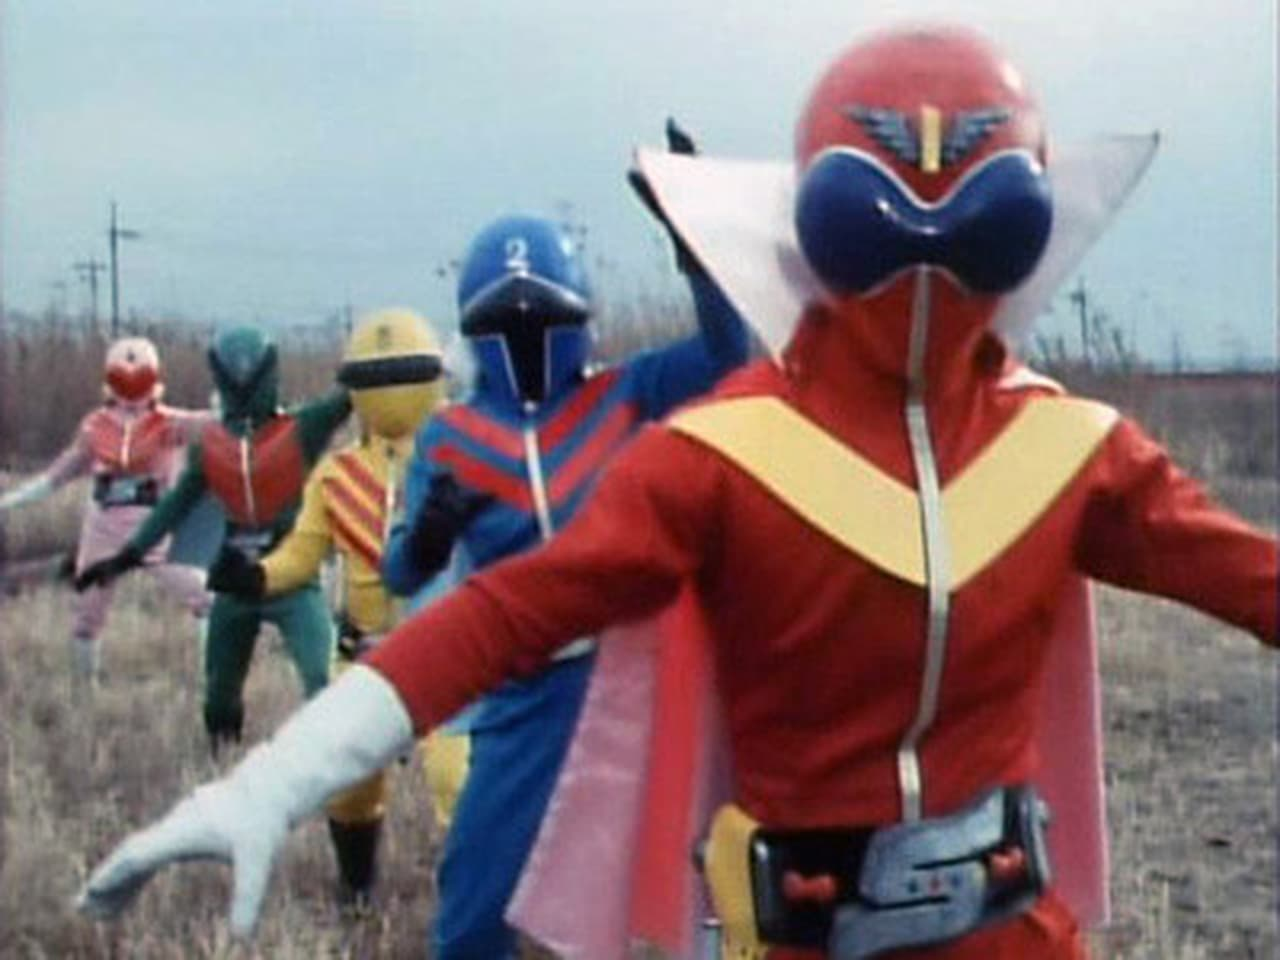 Super Sentai - Season 1 Episode 1 : The Crimson Sun! The Invincible Gorangers (2020)